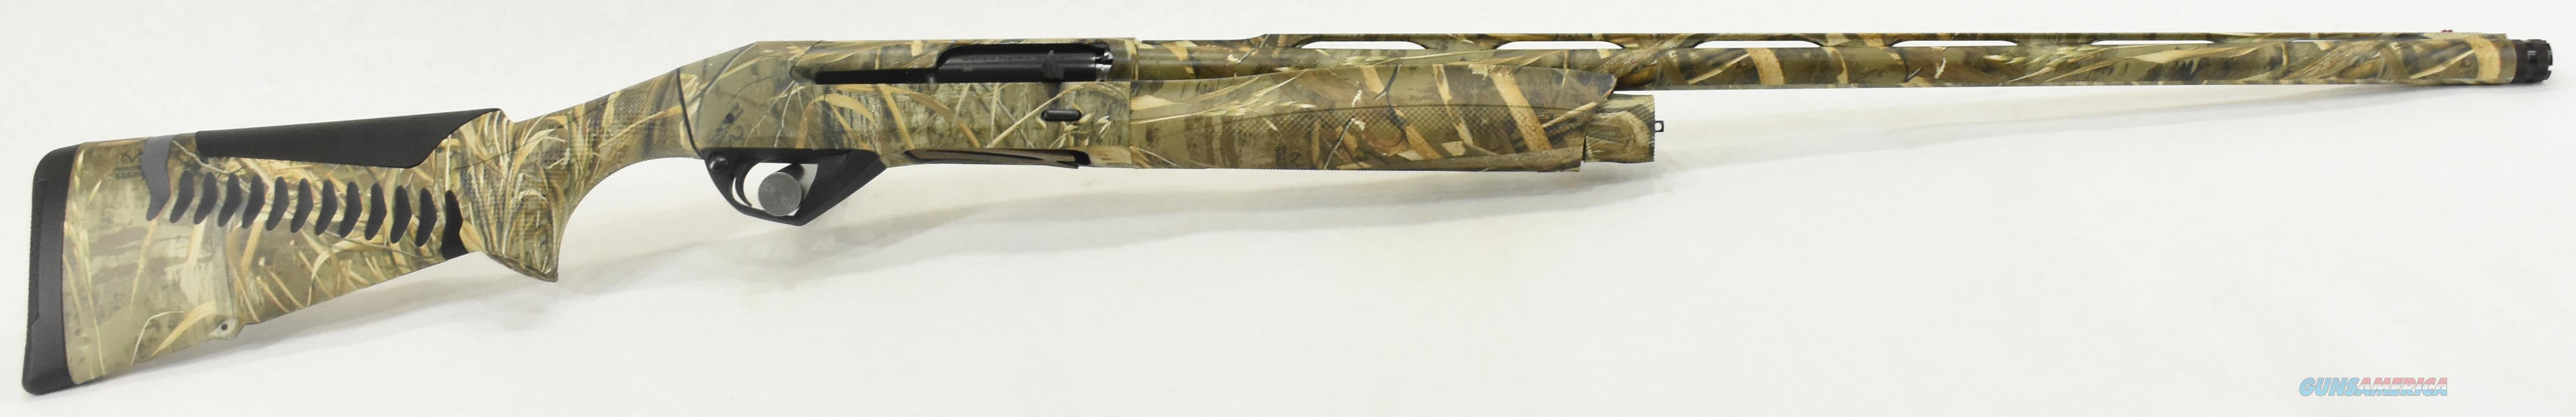 10301 Benelli Super Black Eagle 3 Max 5 Camo 12 Ga 28-3.5In  Guns > Shotguns > Benelli Shotguns > Sporting